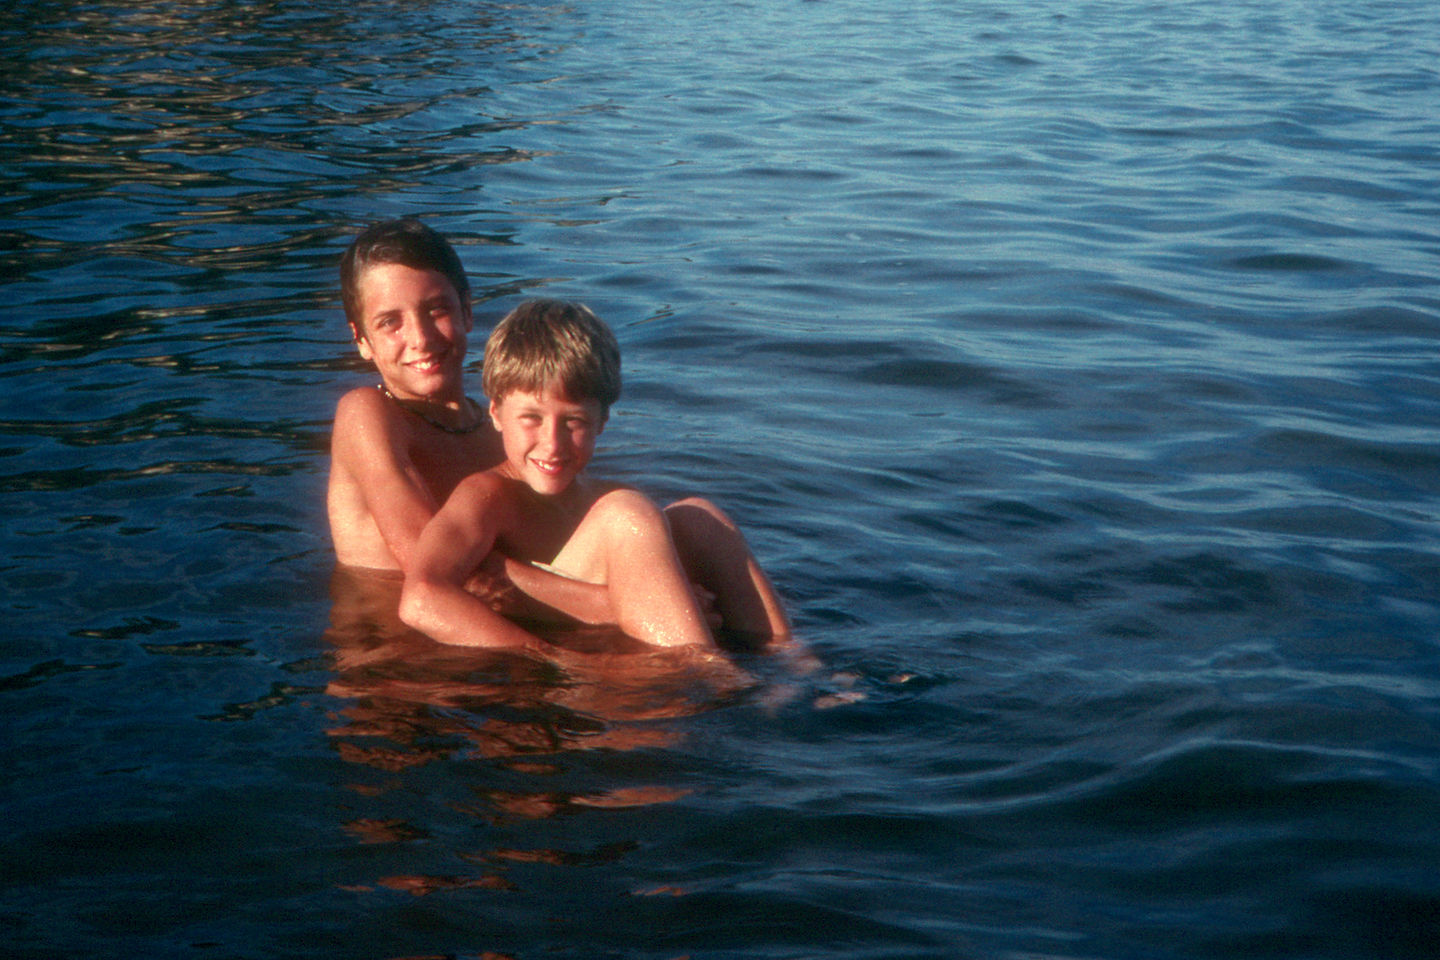 Brotherly love in Lake Colorado